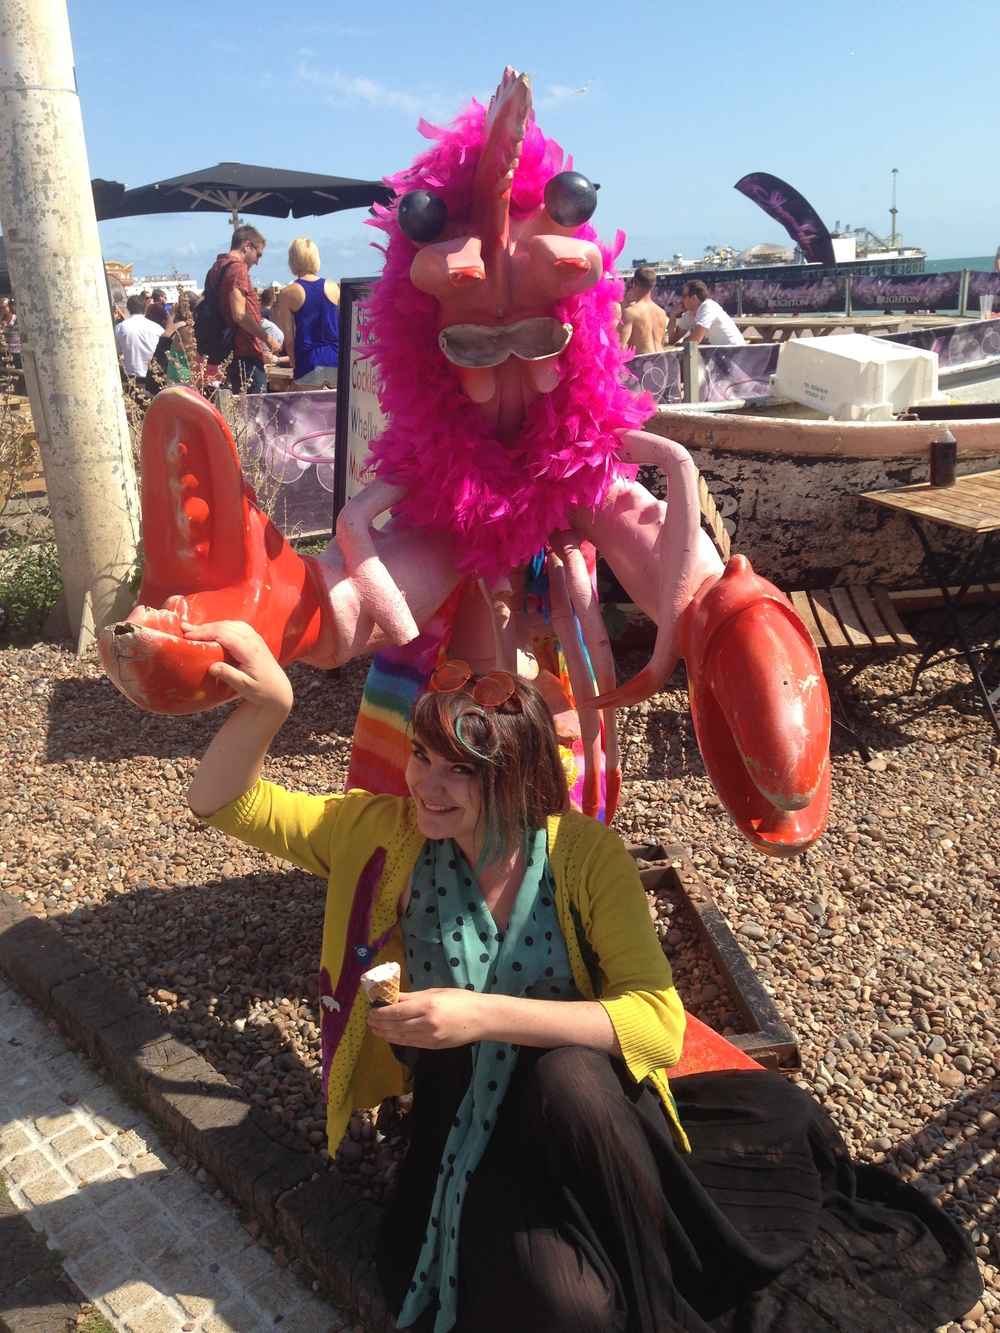 and it wouldn't be Pride without meeting a GIANT camp lobster in the aftermath